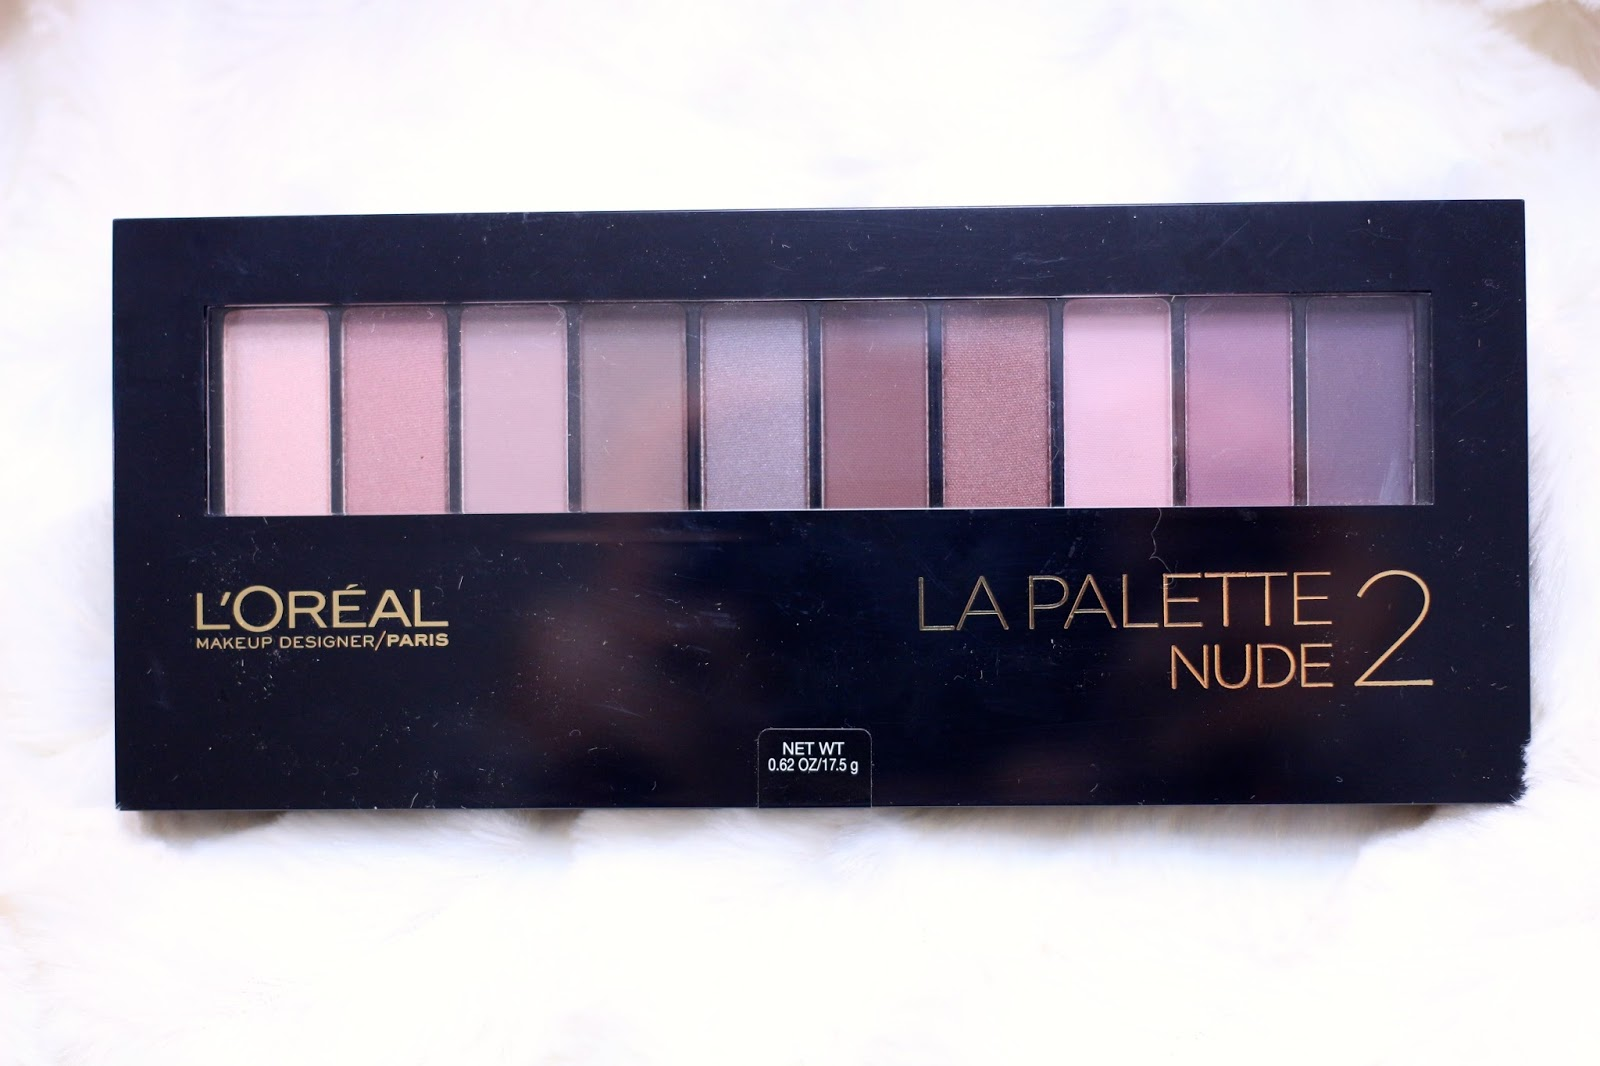 LOreal La Palette Nude 2 Review & Swatches - Musings of a